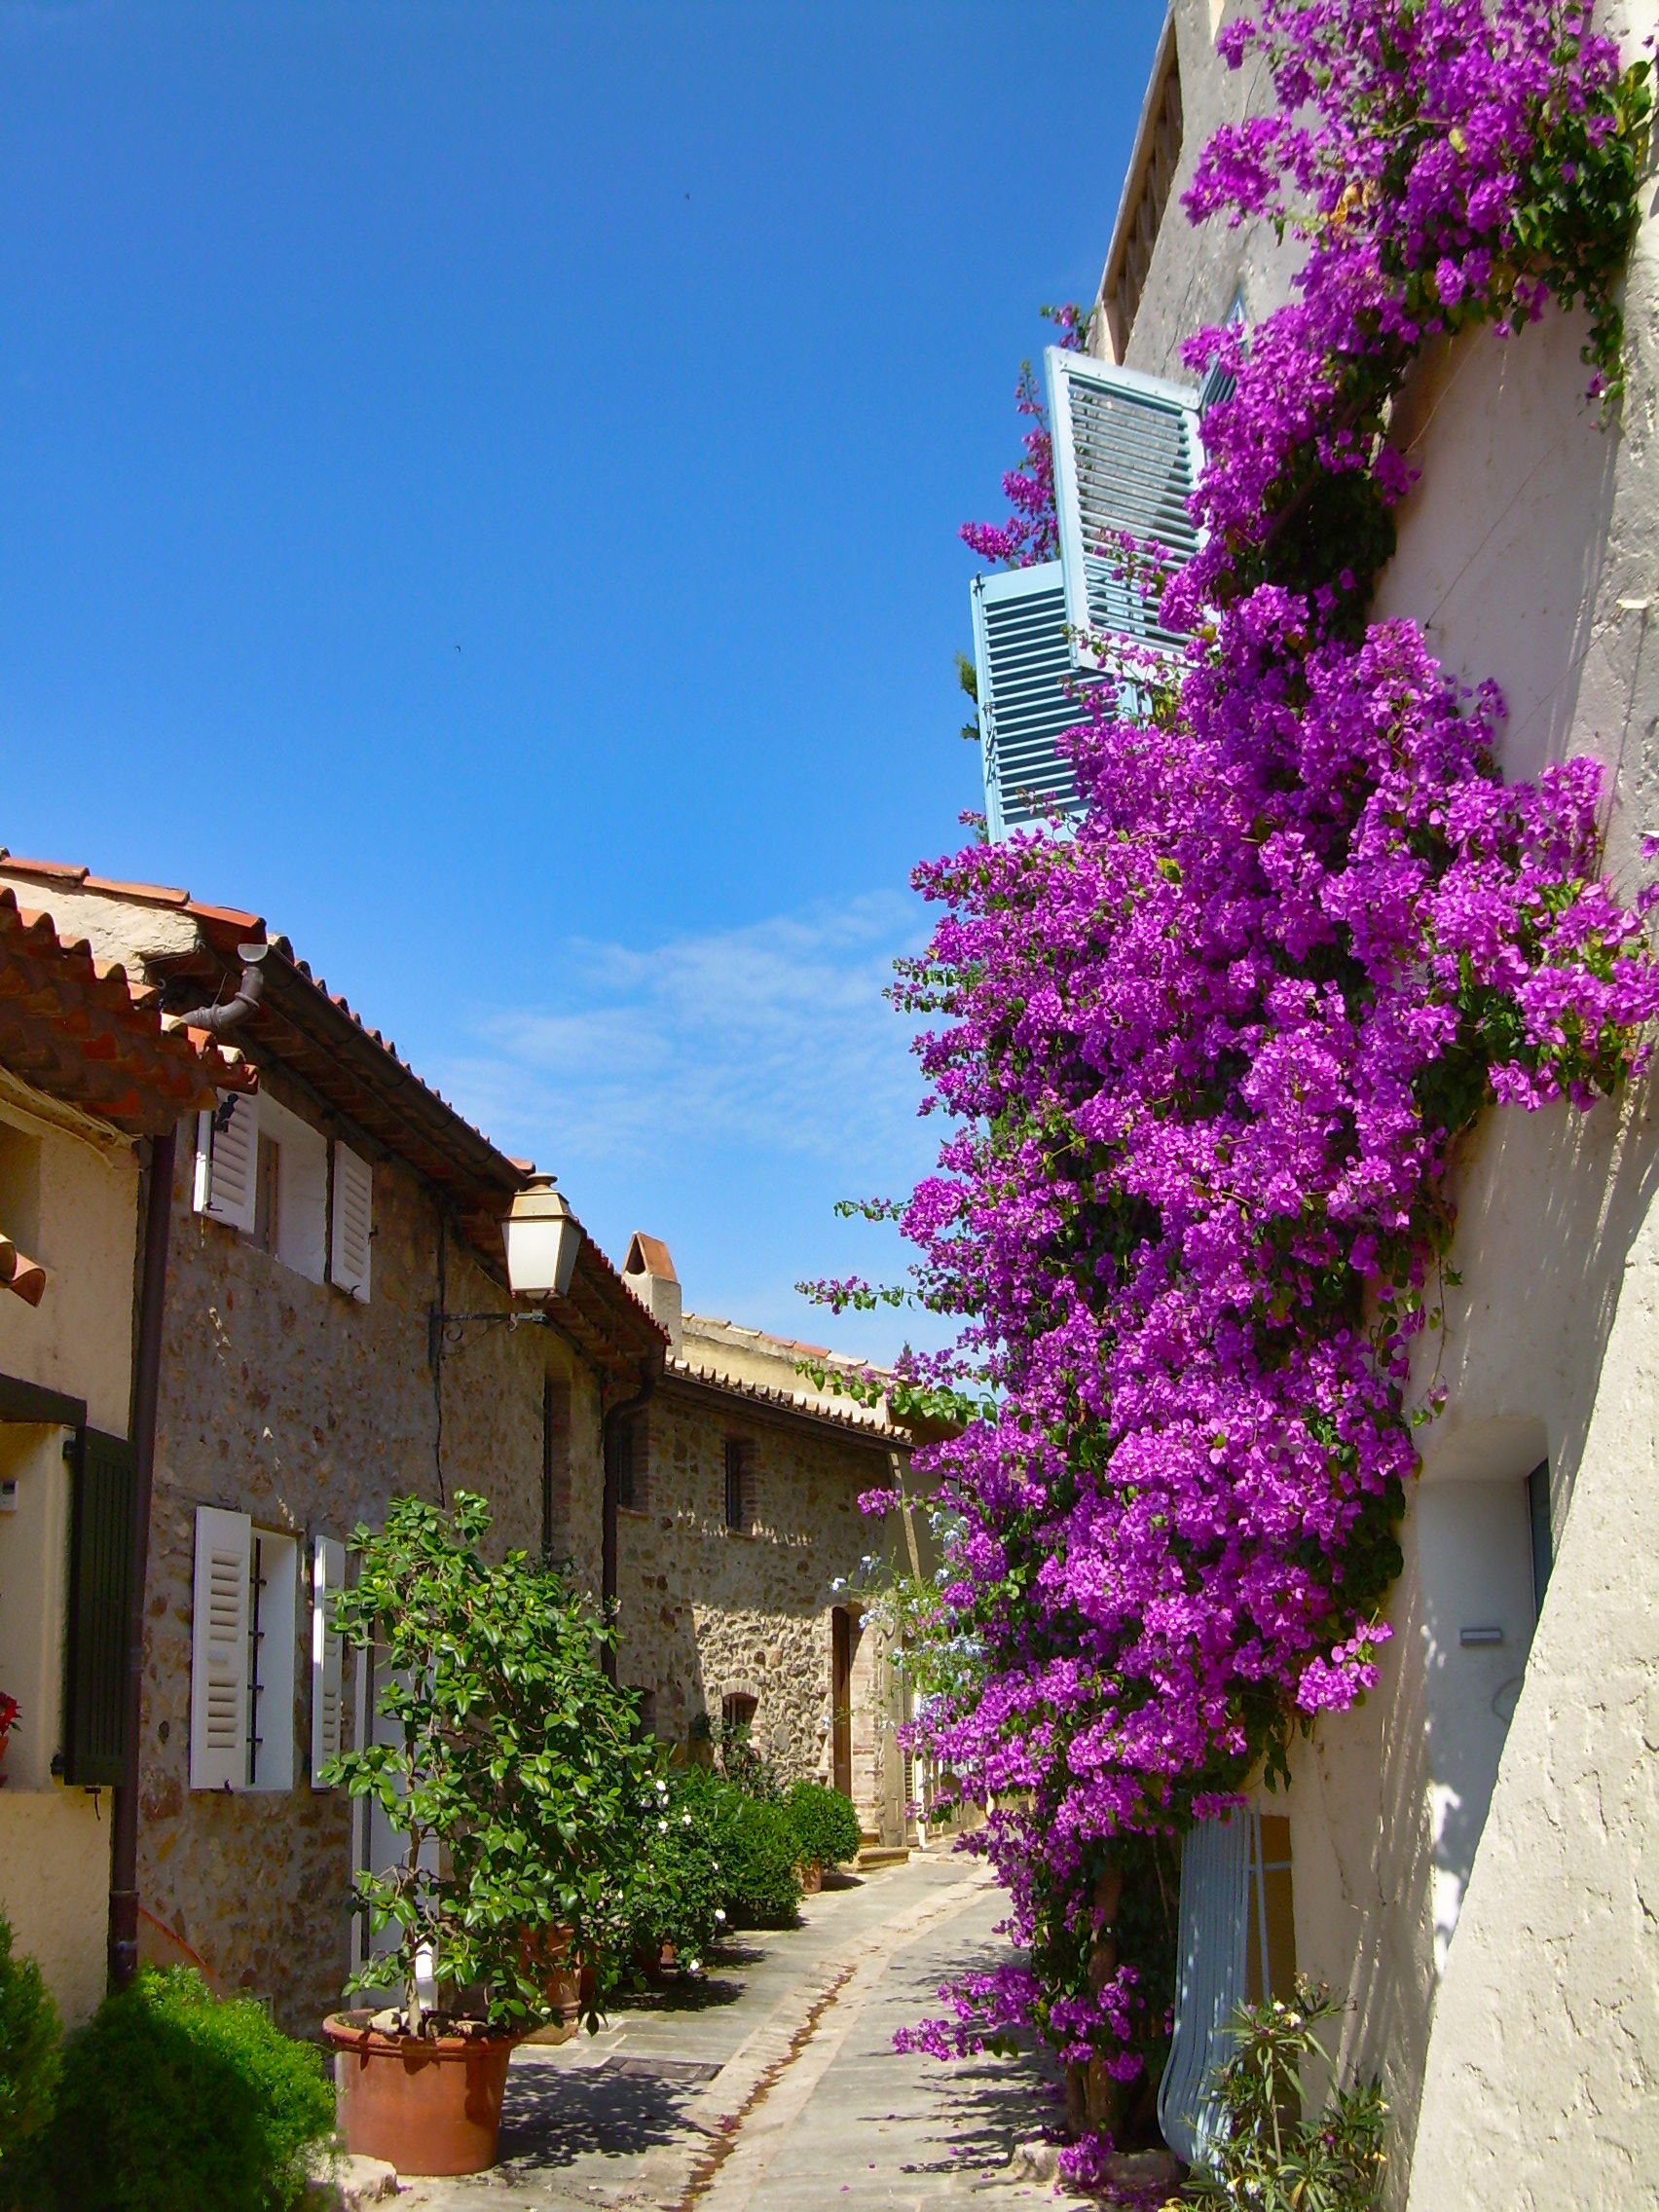 File:Grimaud-village-12.jpg - Wikimedia Commons